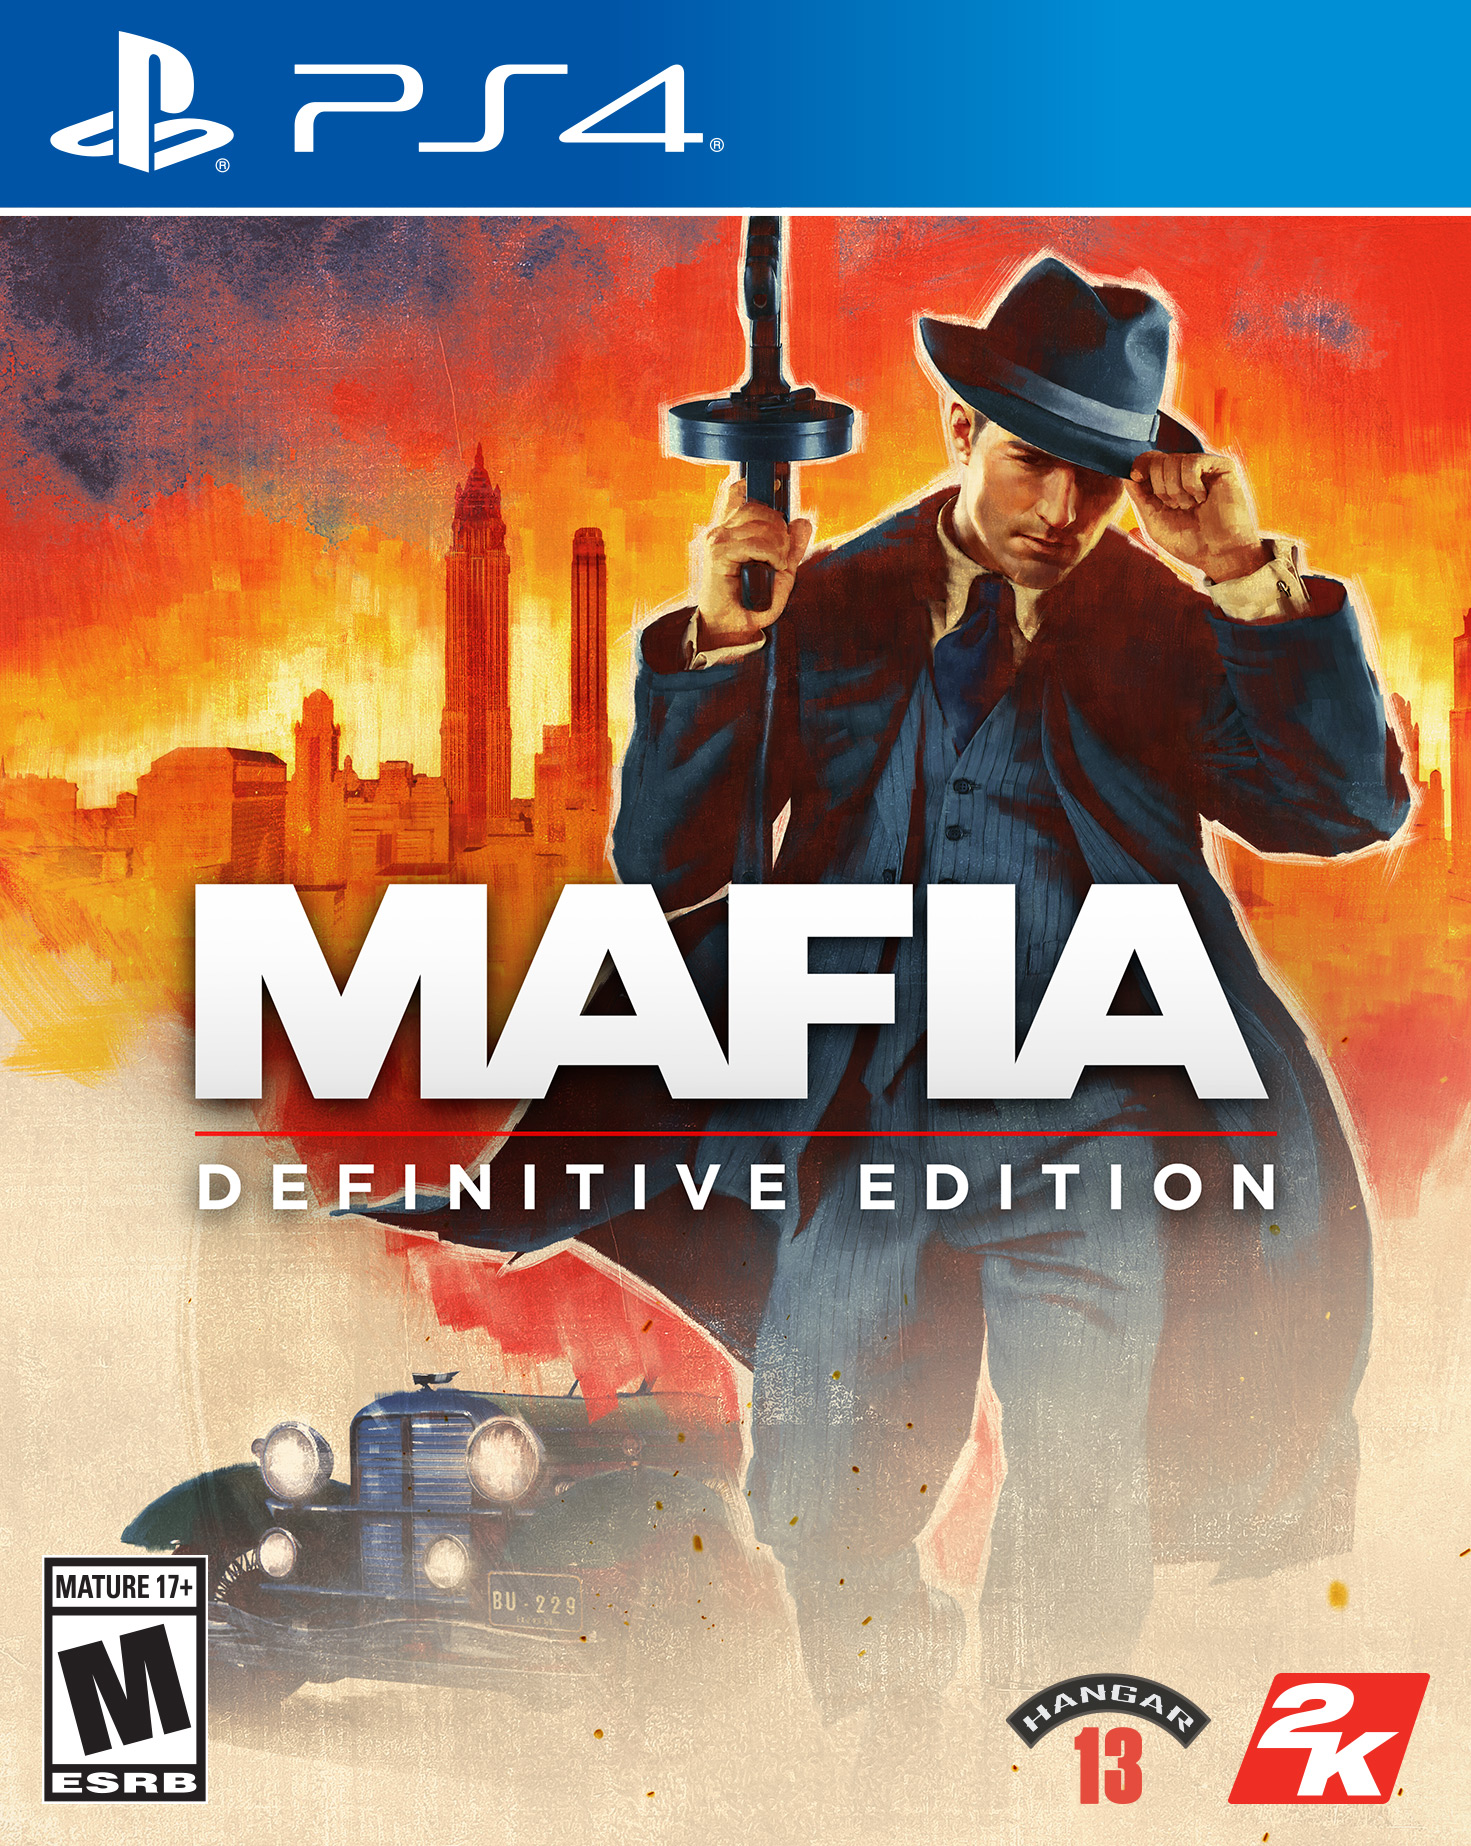 Mafia Definitive Edition, 2K, PlayStation 4